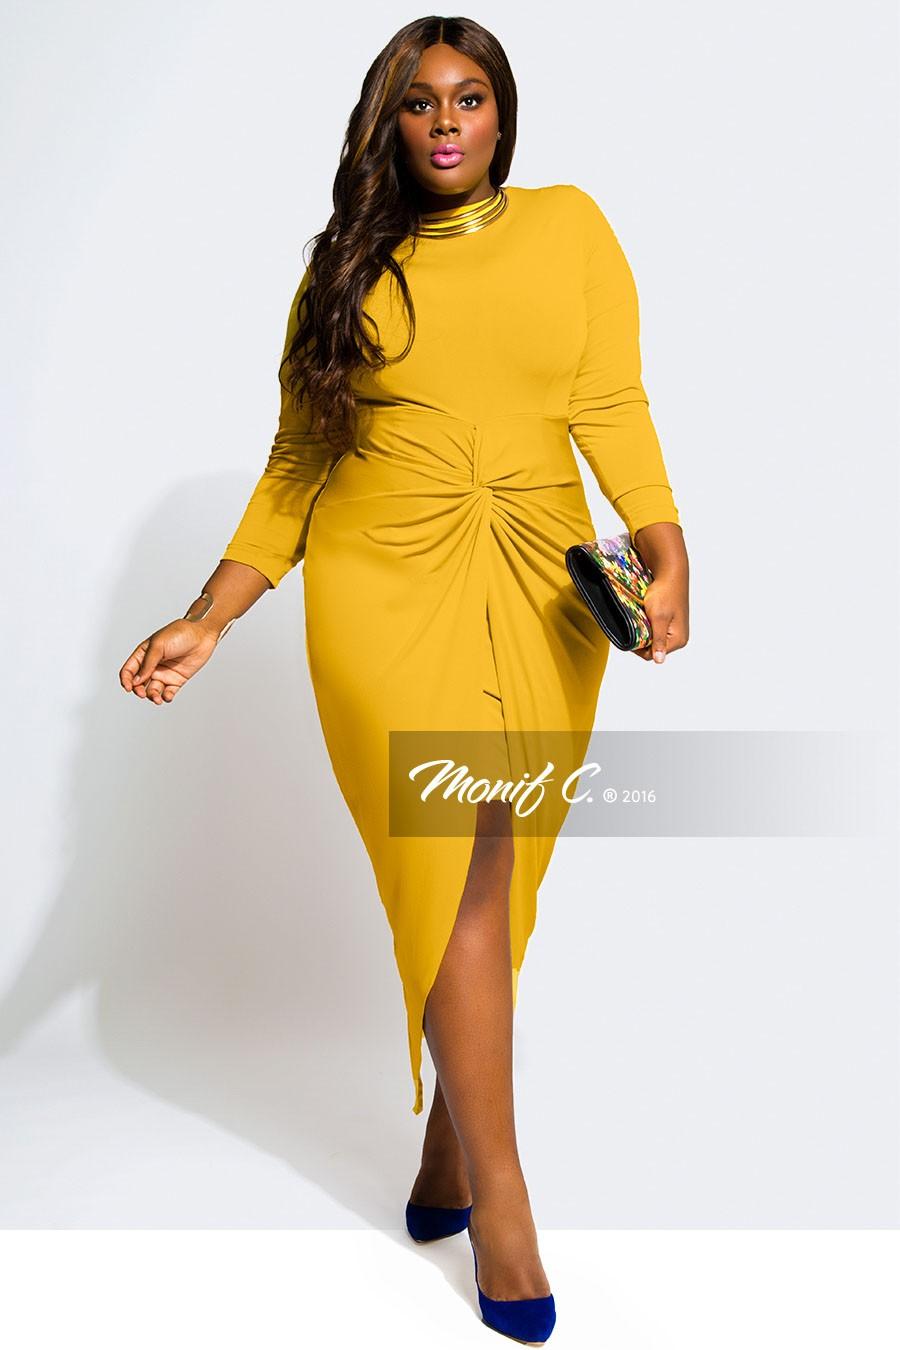 2016 Plus Size New Women's Spring Dress Casual Sexy Lady Clothing Long Sleeve Big Size Yellow Dress Women Deep Fat Clothes(China (Mainland))